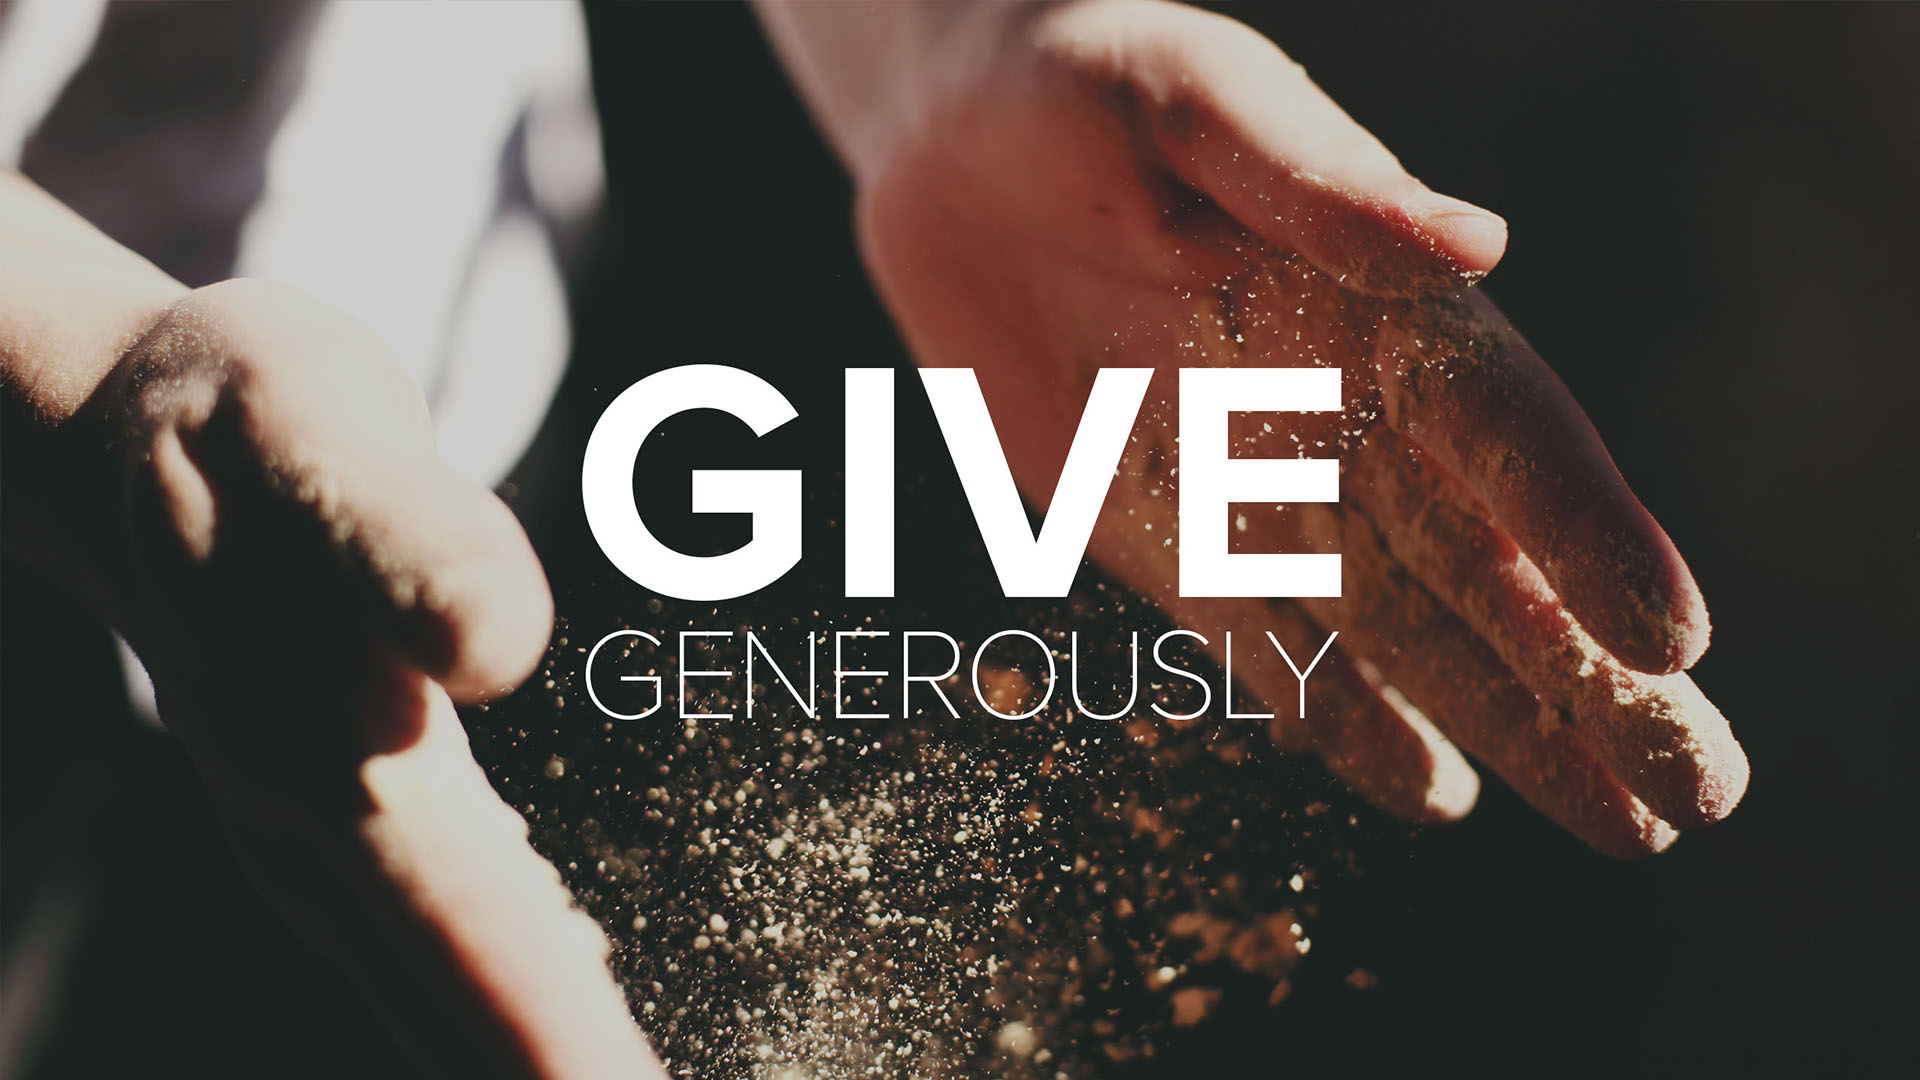 Non-cash giving - You can support Redeemer through marketable securities such as stocks, bonds or mutual funds. You can also give other non-cash gifts or include Redeemer in your estate planning. For more information, please contact us via email at giving@redeemer.net